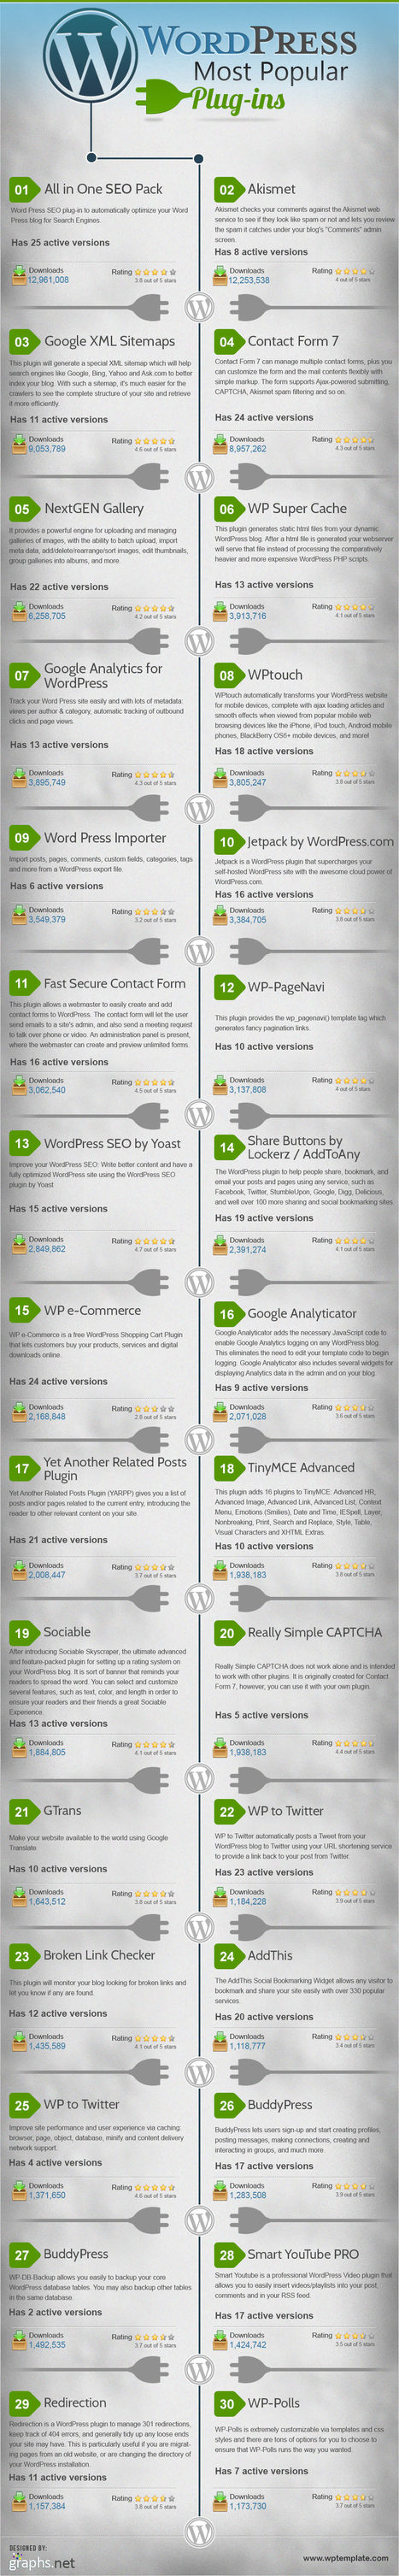 Most Popular WordPress Plugins [Infographic] | Wonderful World of the Web | Scoop.it